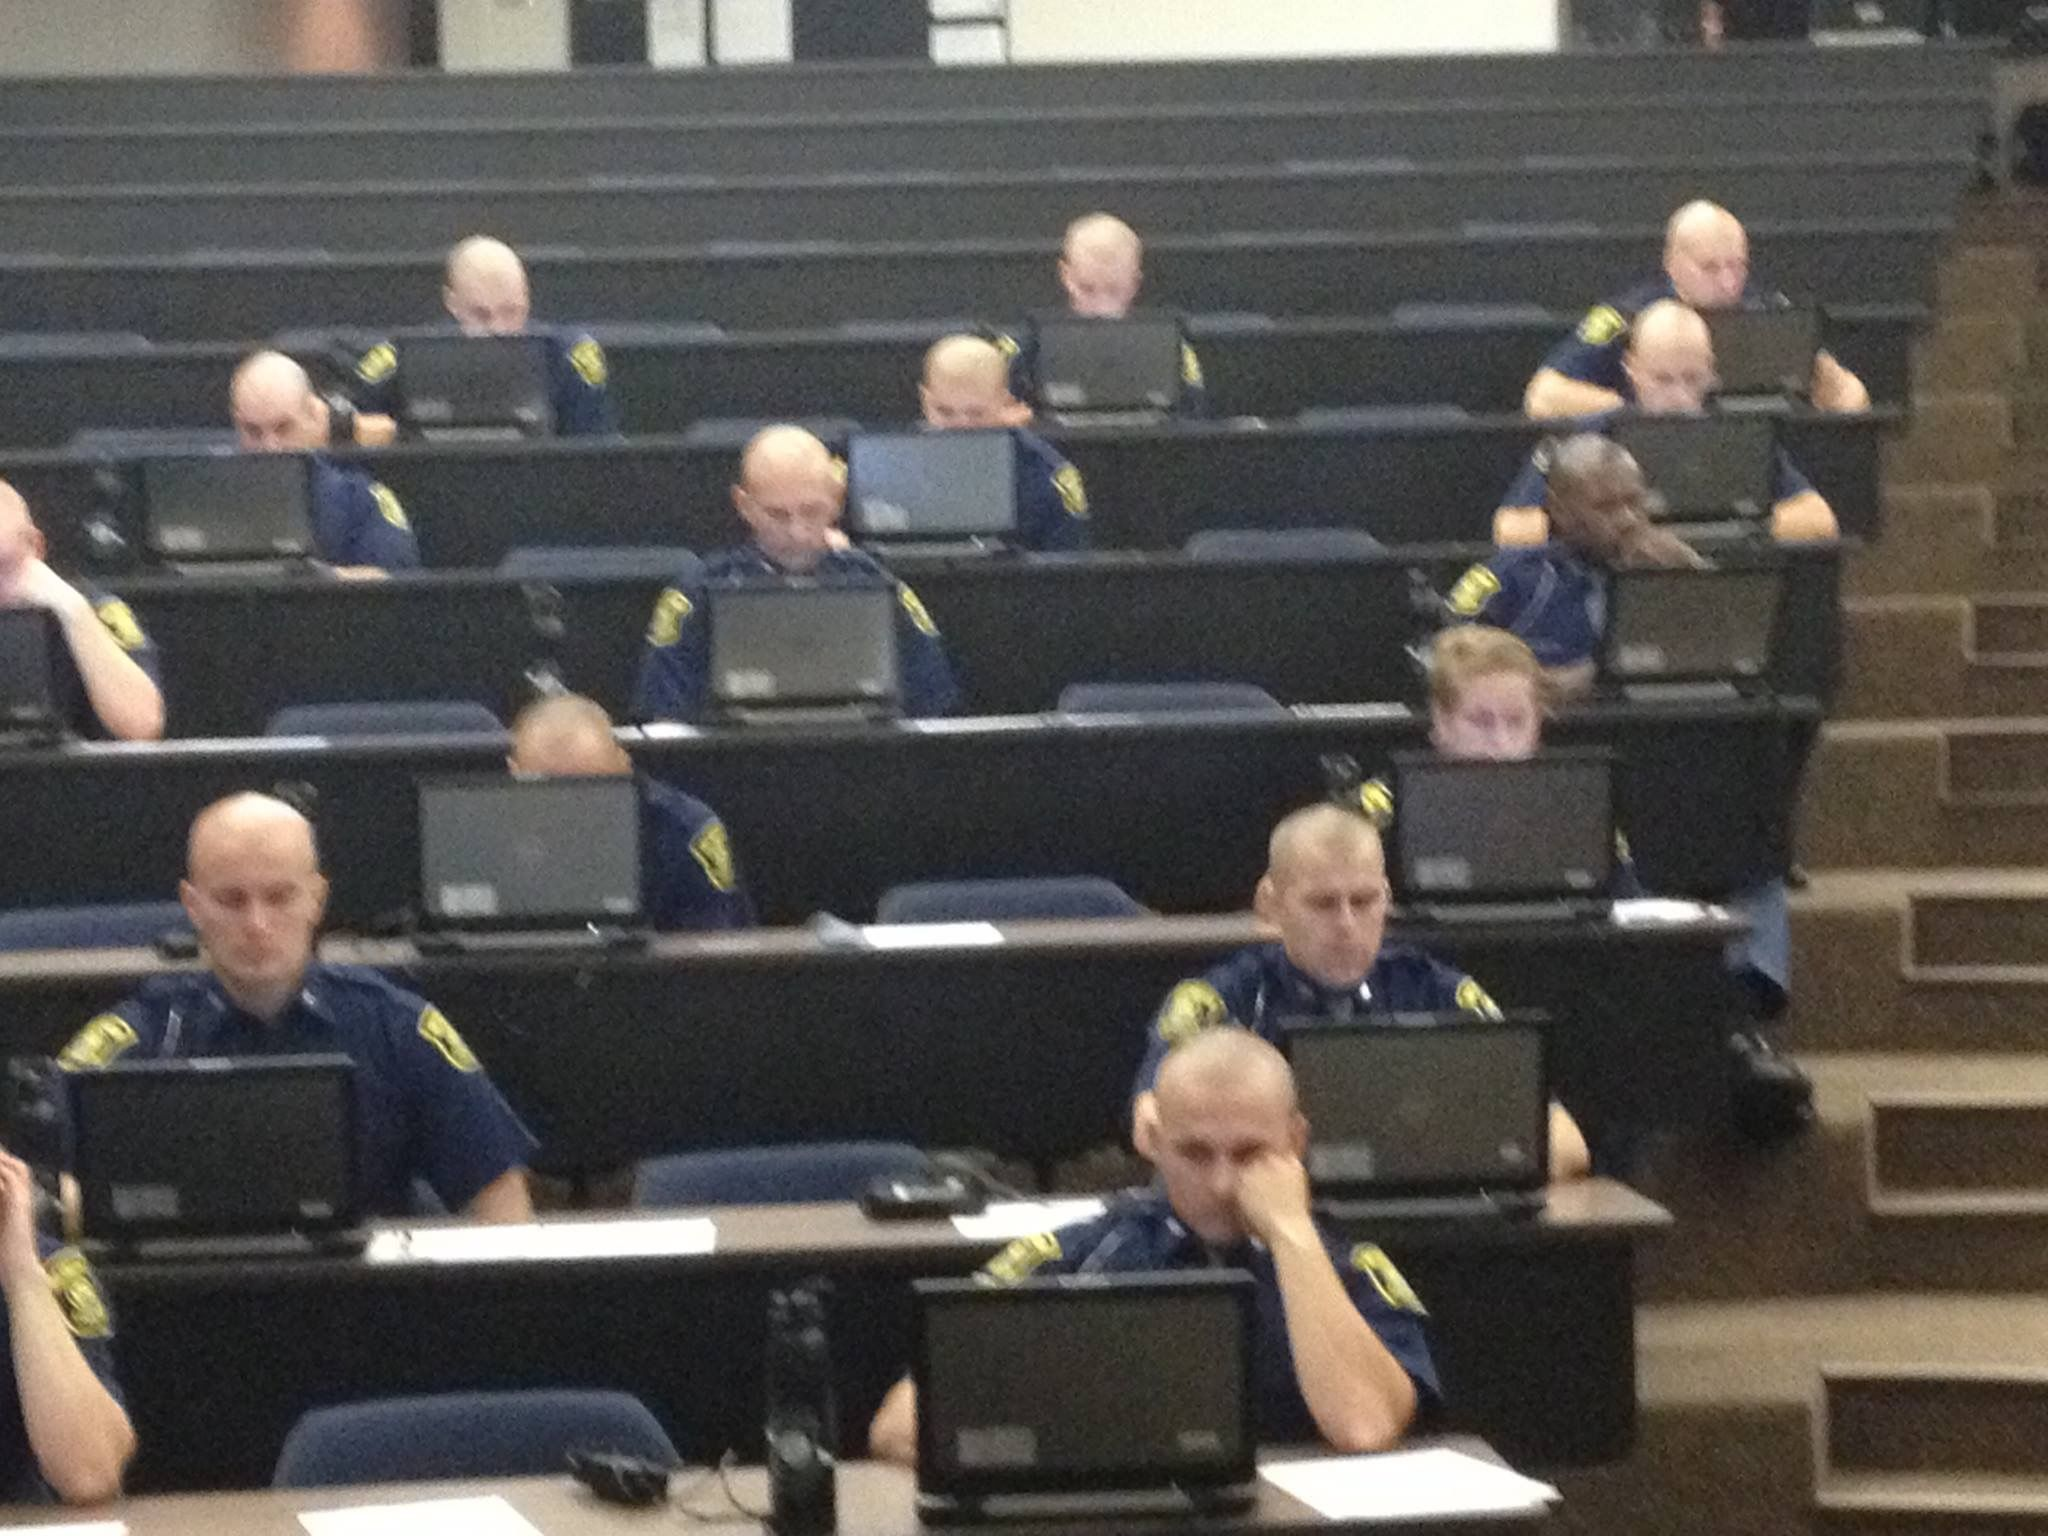 Michigan State Police Recruits Taking The Mcoles Licensing Exam